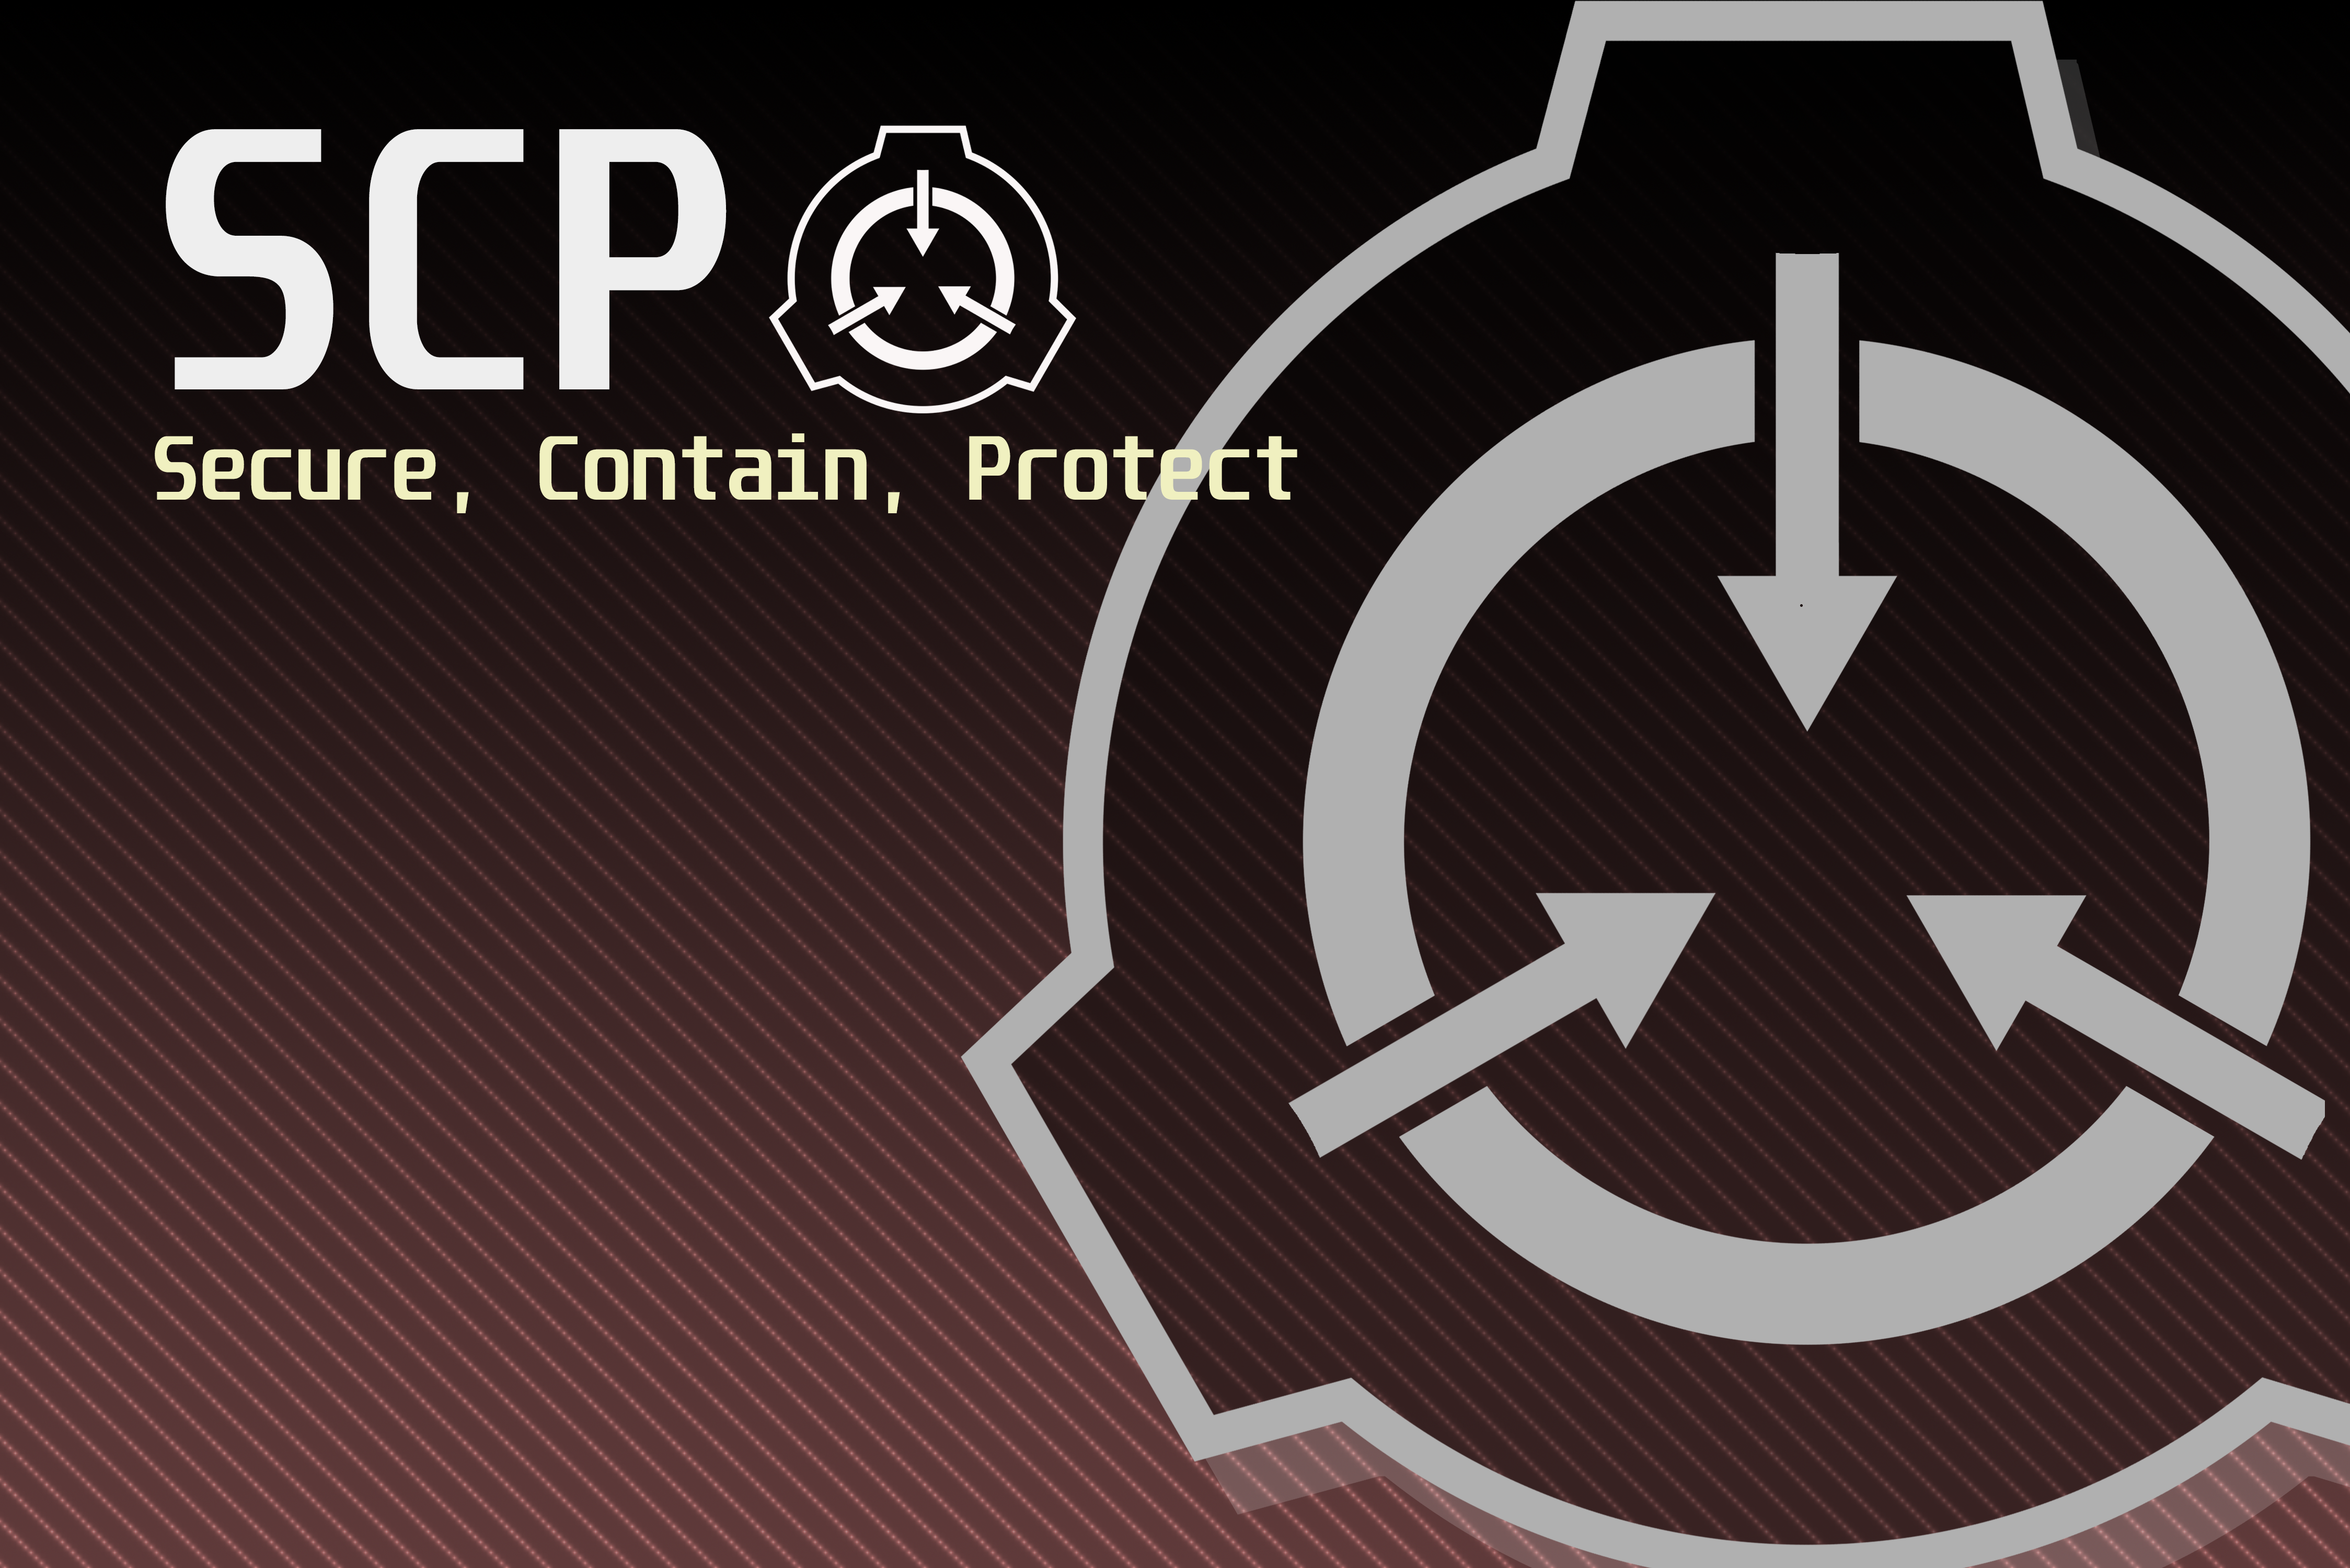 Scp Ccard Wiki 01 Scp Foundation Logo 4496x3000 Wallpaper Teahub Io